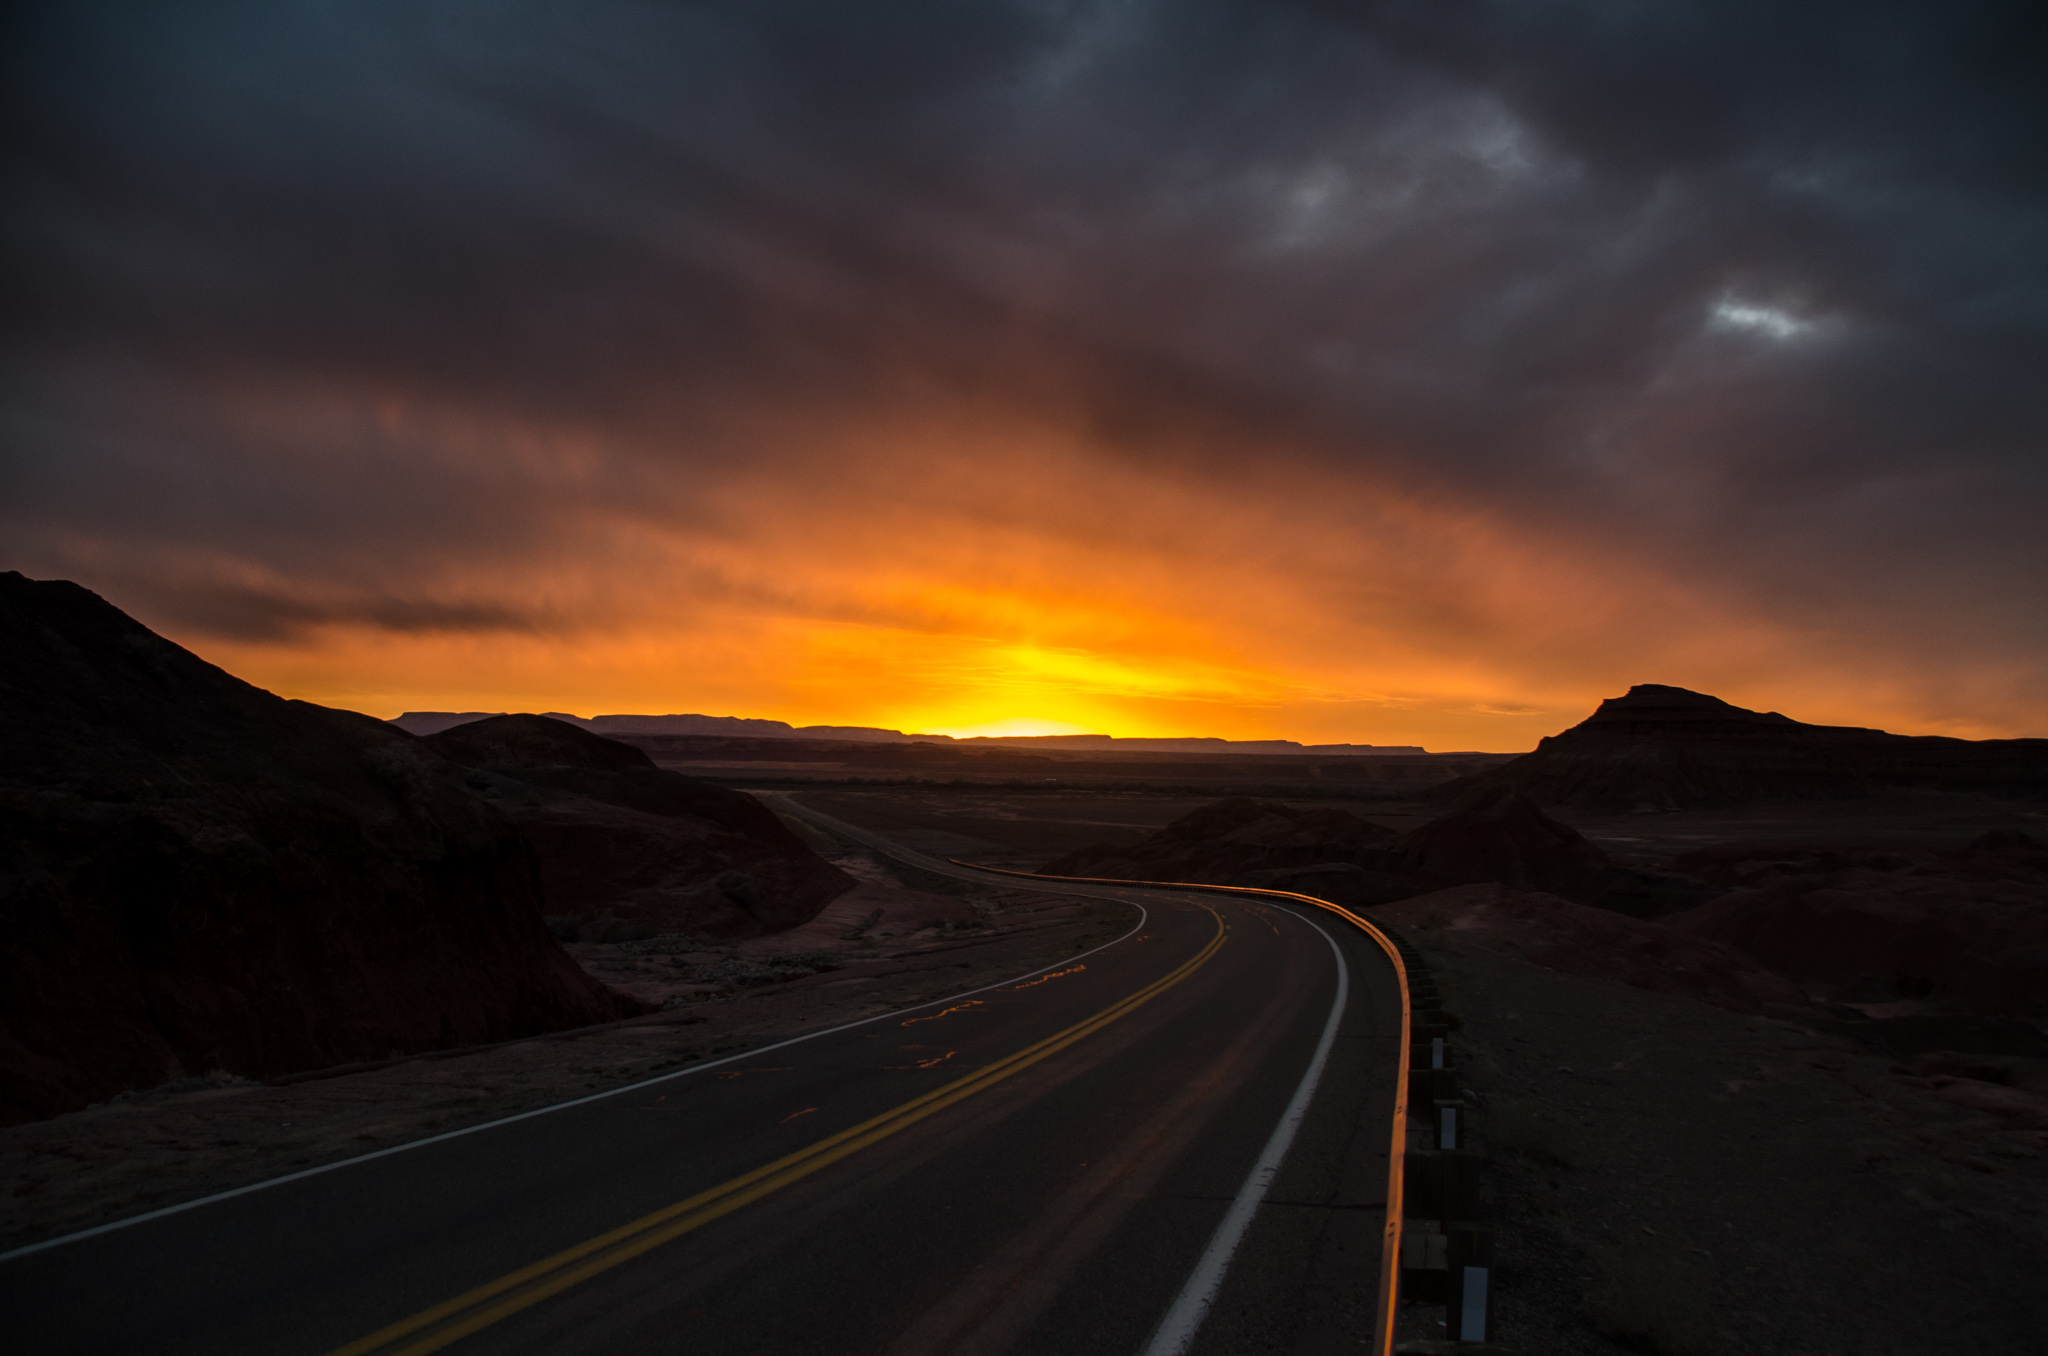 2015-02-21 - Sunset In The Painted Desert - 019